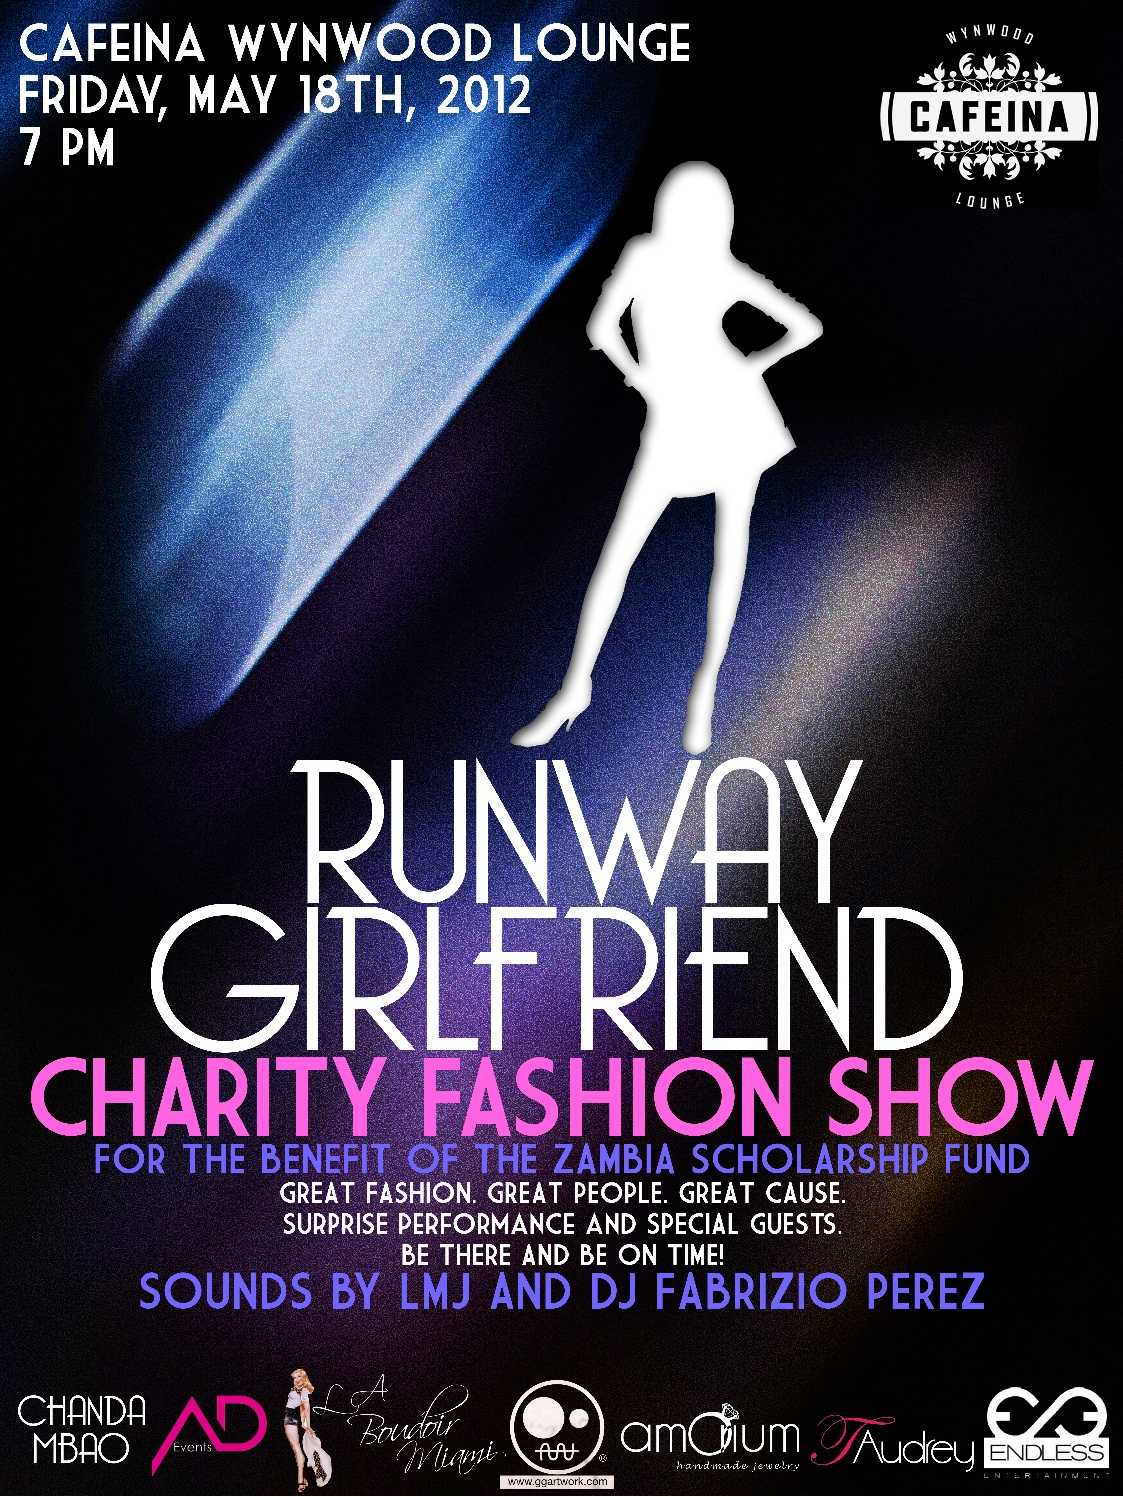 Runway Girlfriend Charity Fashion Show